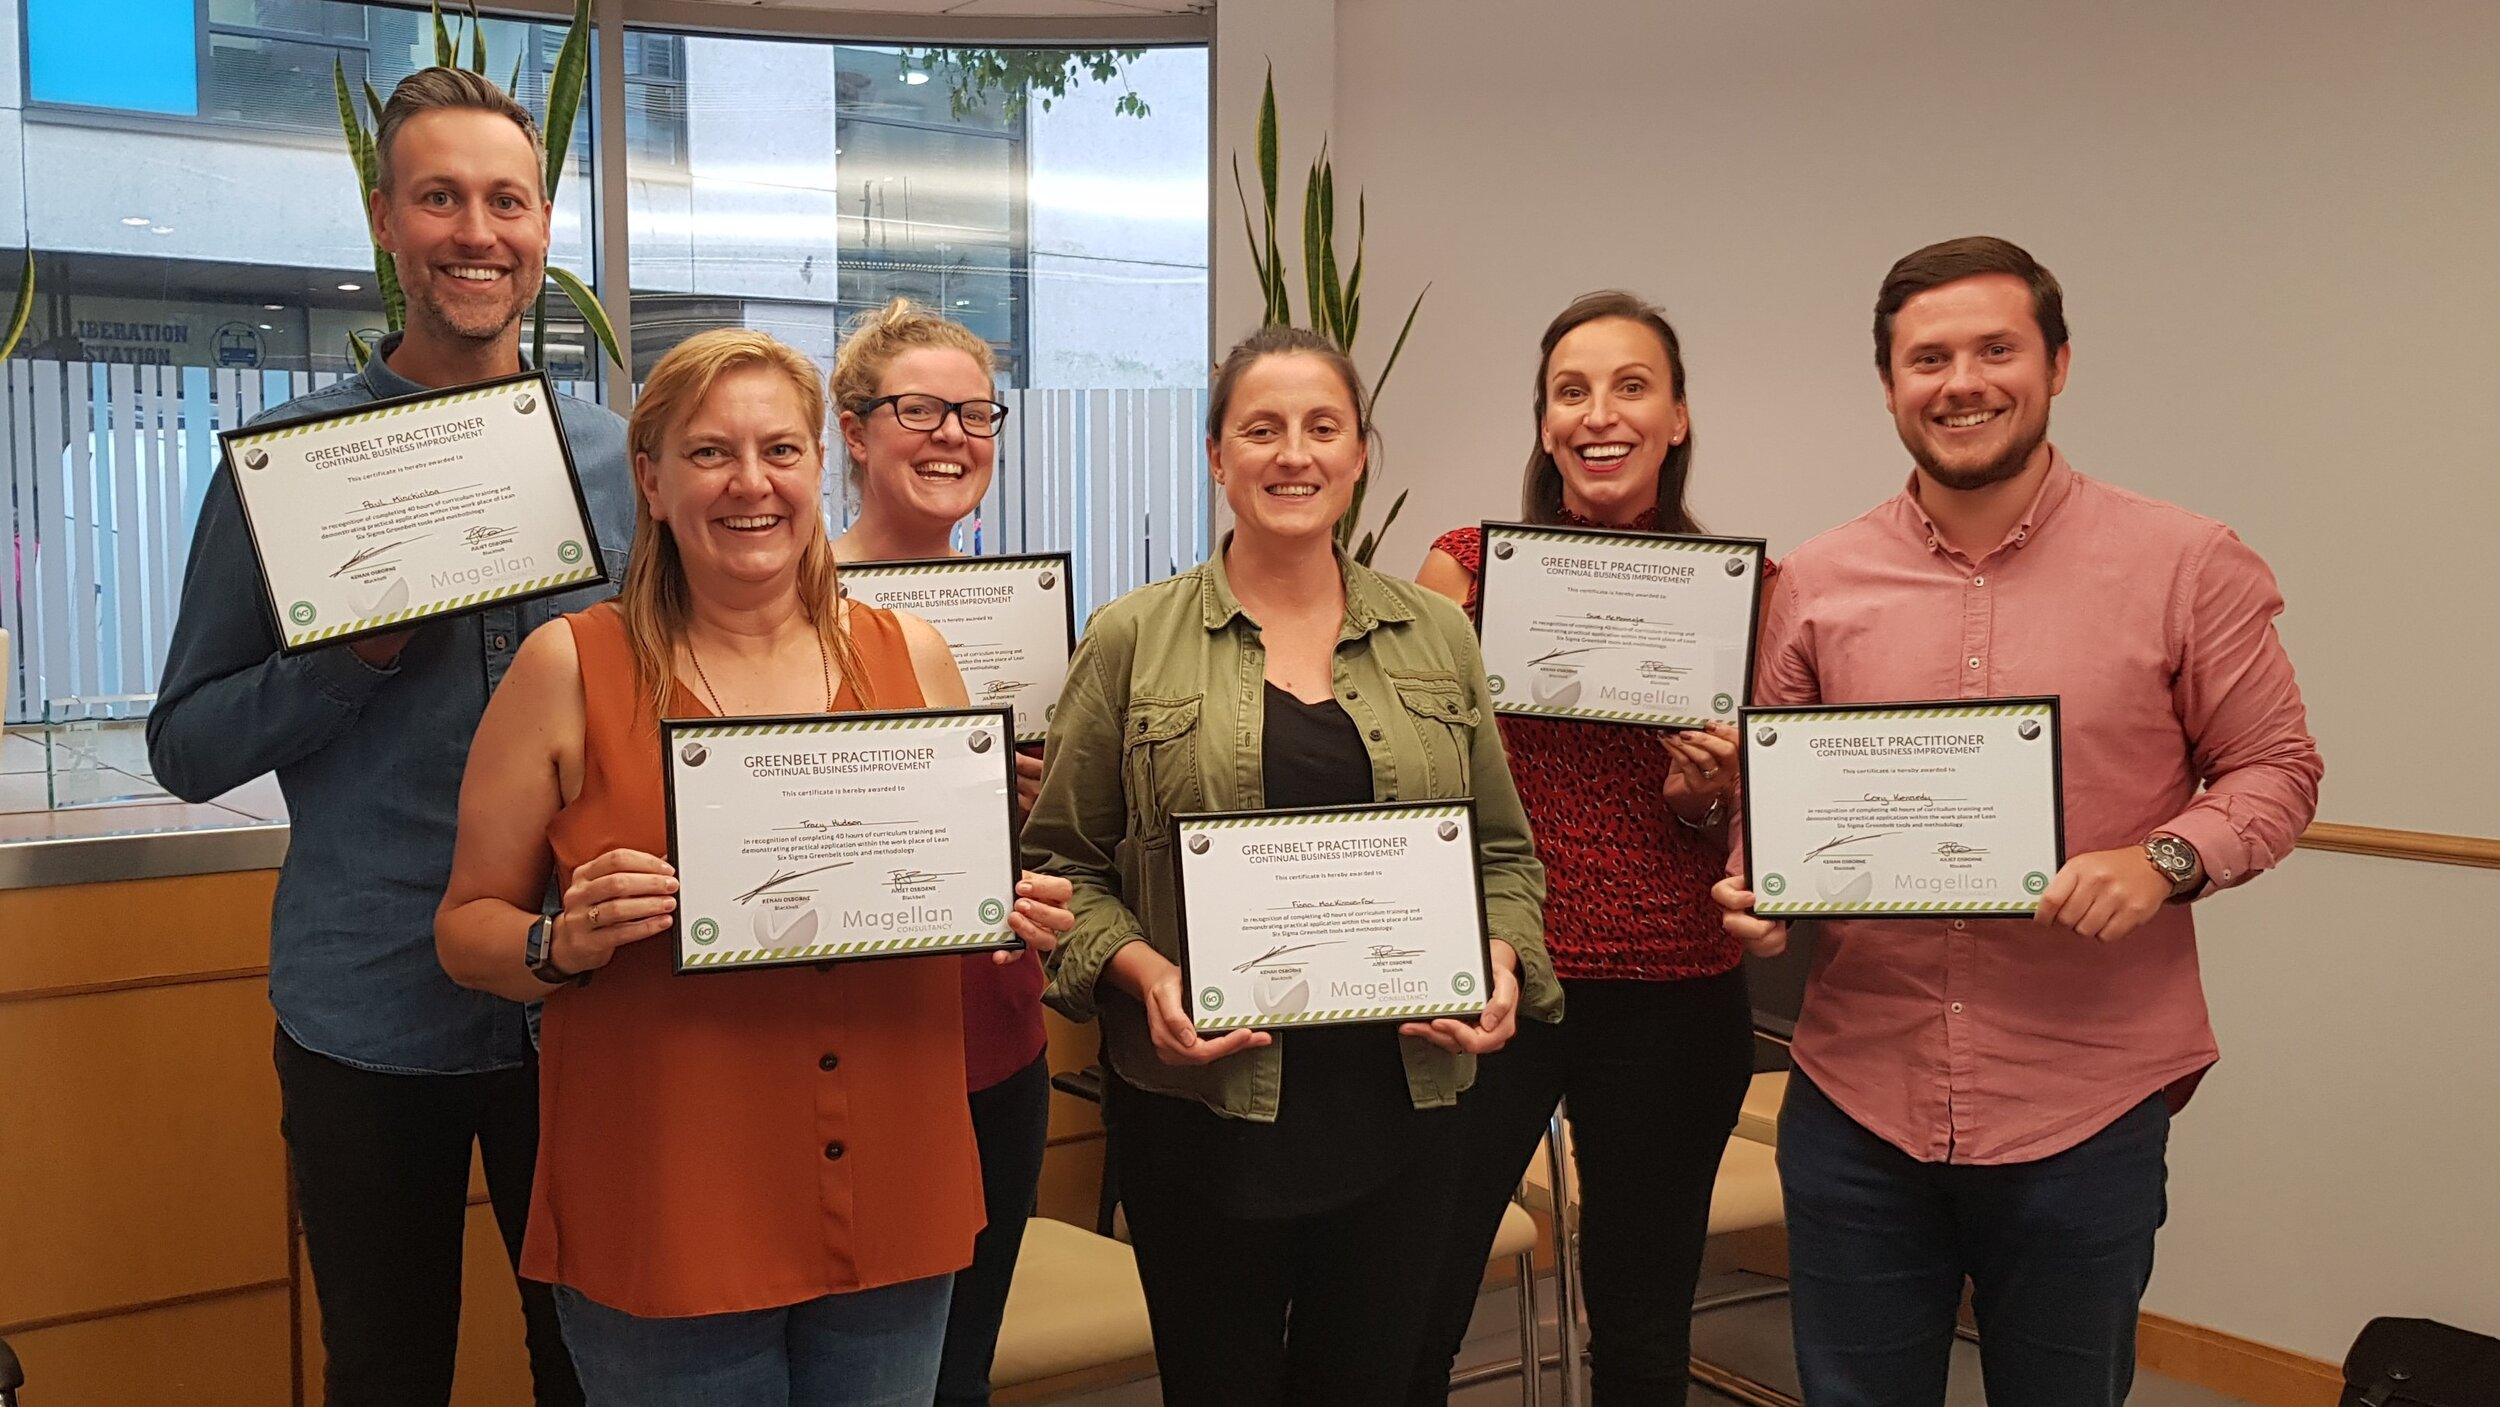 Our latest cohort of Greenbelts passed with flying colours. Congratulations to you all, you have made some amazing progress with your inititives. OCTOBER 2019